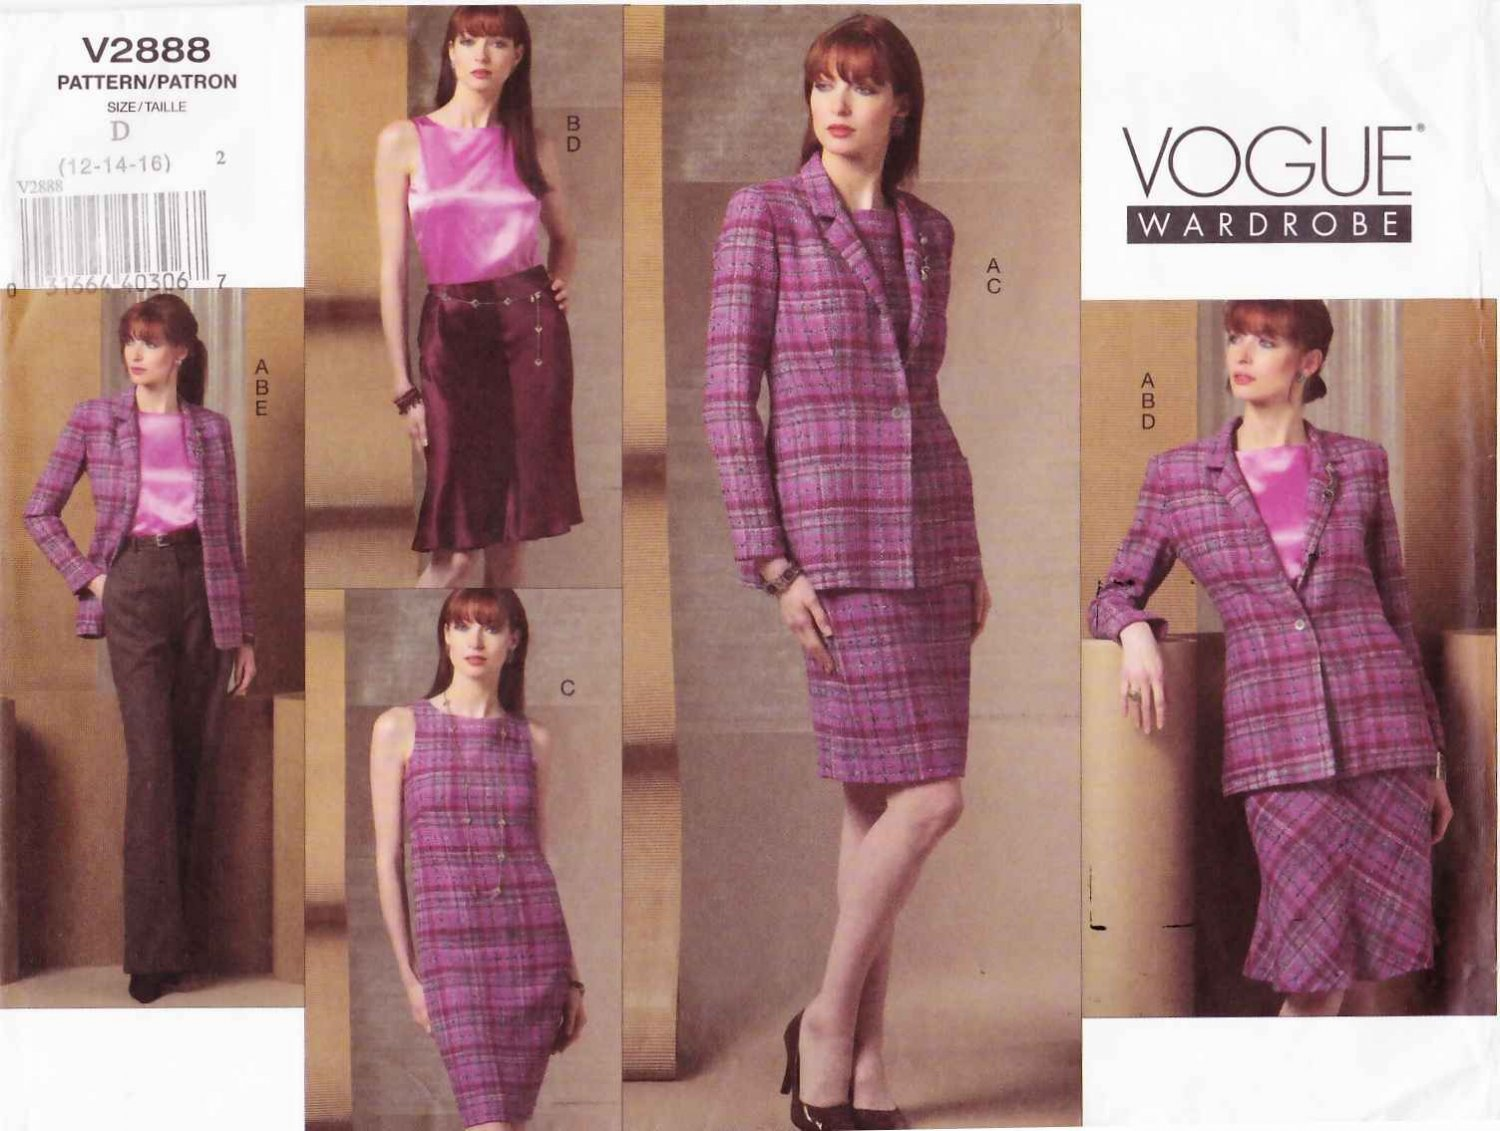 Vogue Sewing Pattern 2888 Misses size 12-14-16 Easy Wardrobe Skirt Dress Jacket Pants Top